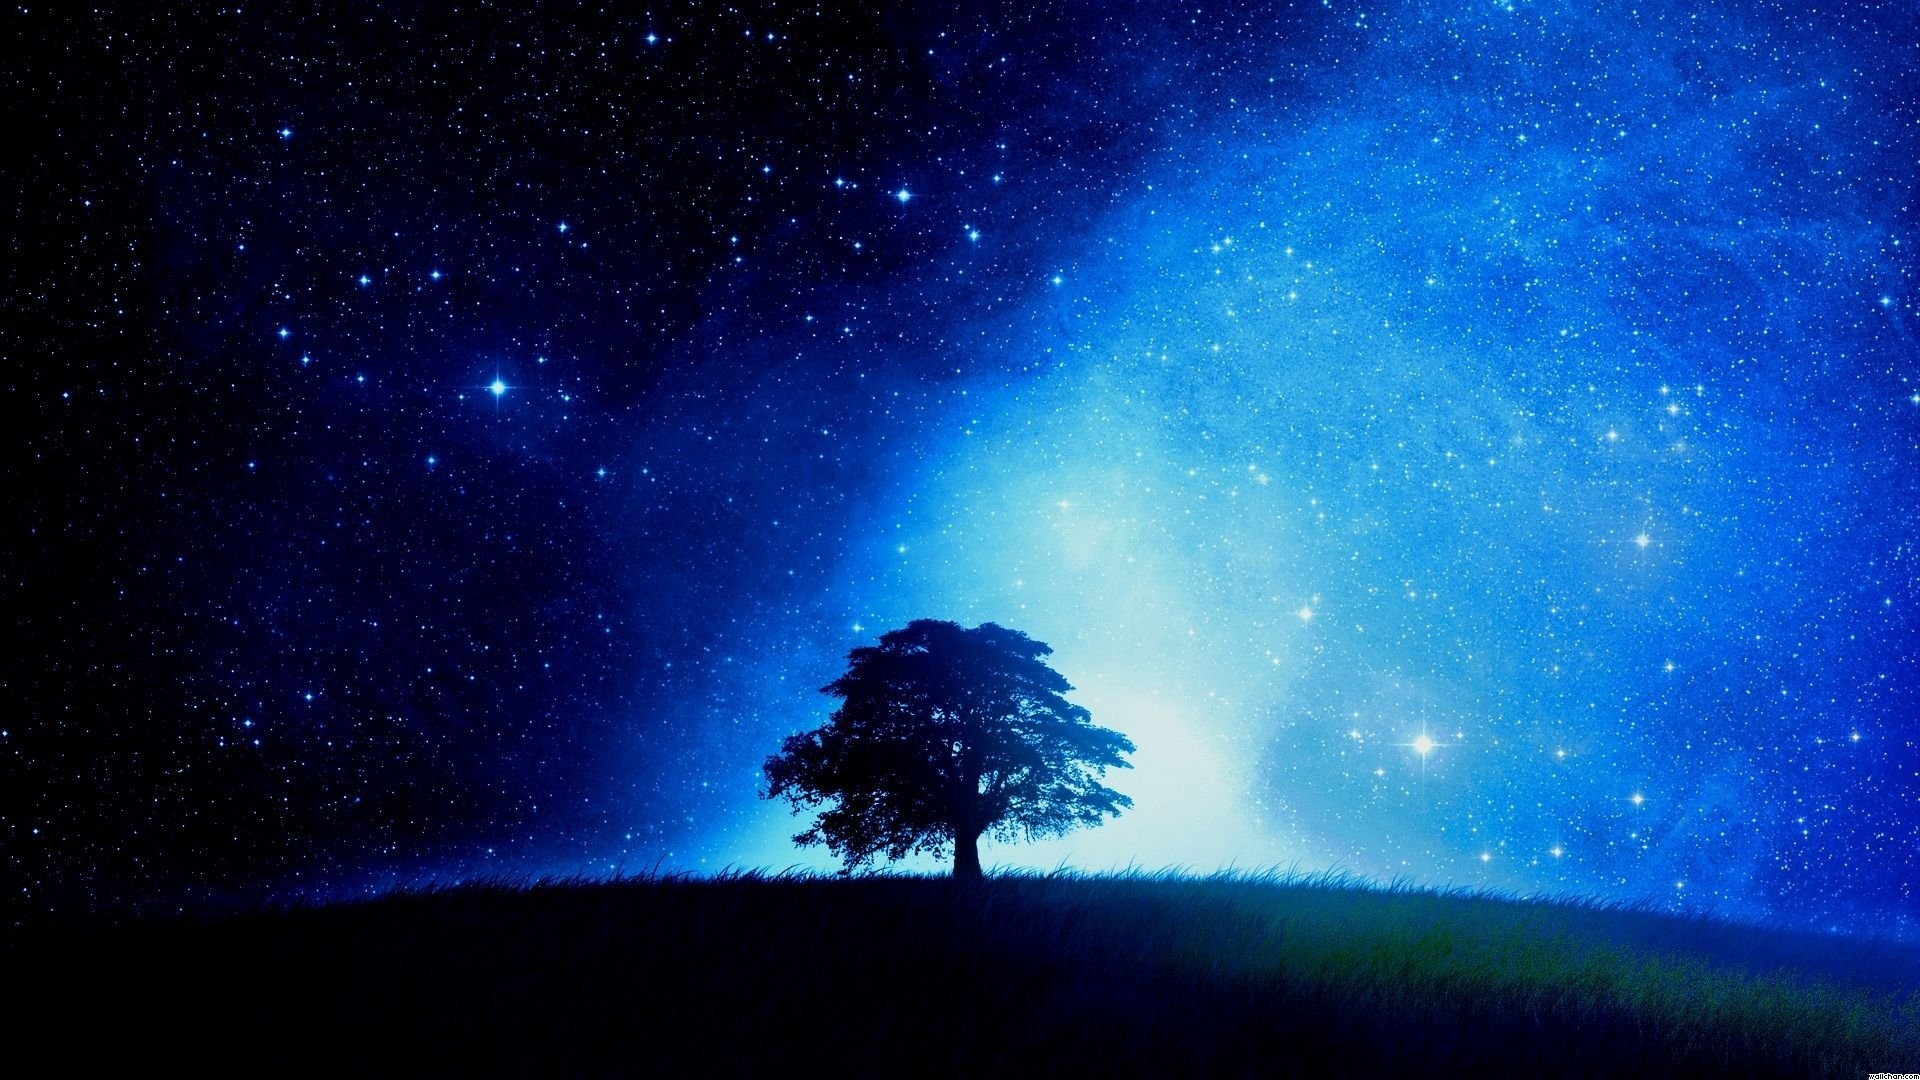 Tree And Space HD Wallpaper